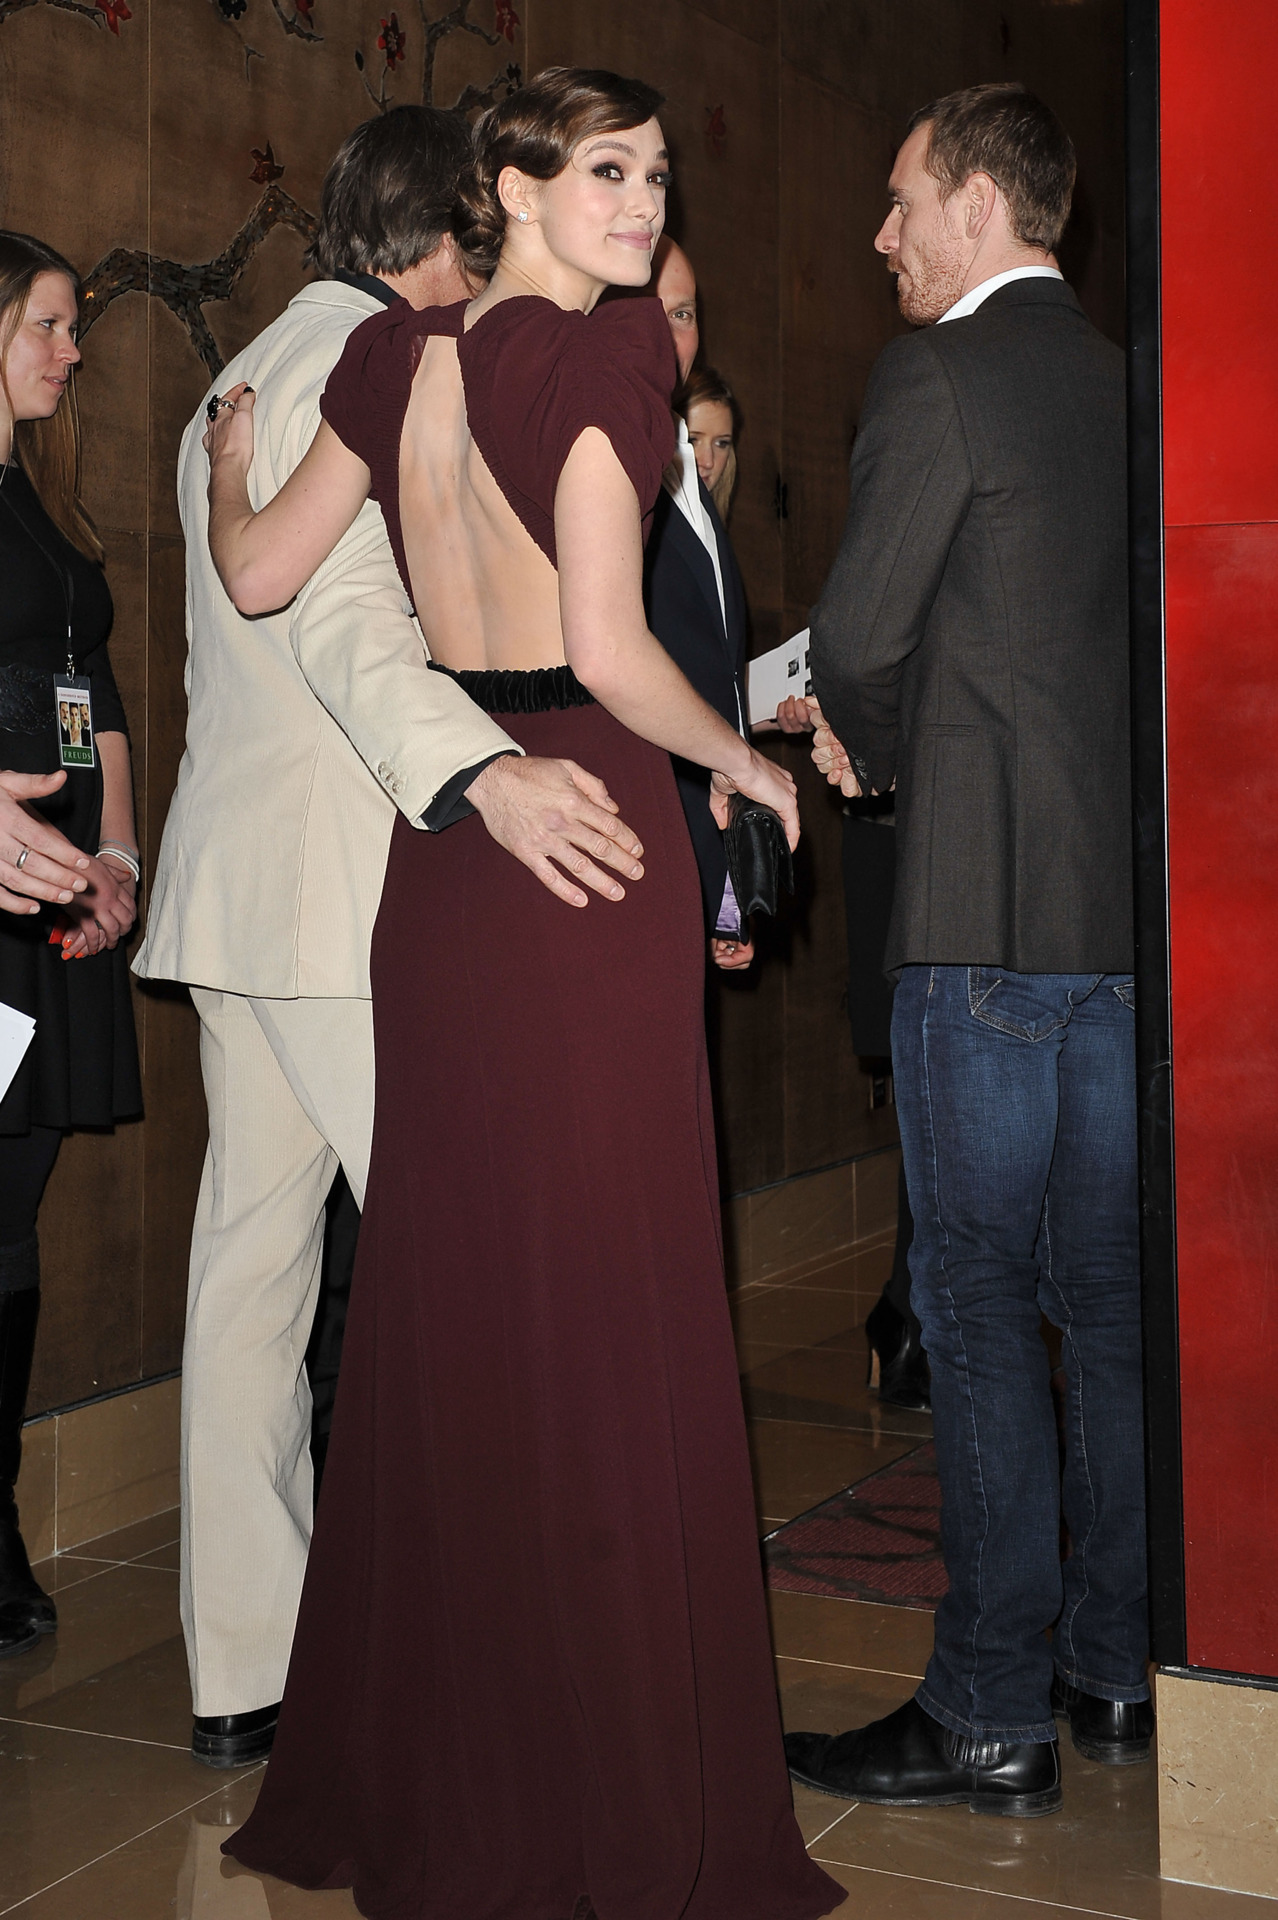 Viggo Mortensen, Keira Knightley and Michael Fassbender at a gala screening of A Dangerous Method in London yesterday I want Viggo's hand on my ass!  Someone who was at this screening said that Viggo and Fassy danced together to Girl from Ipanema.  SWOOON!